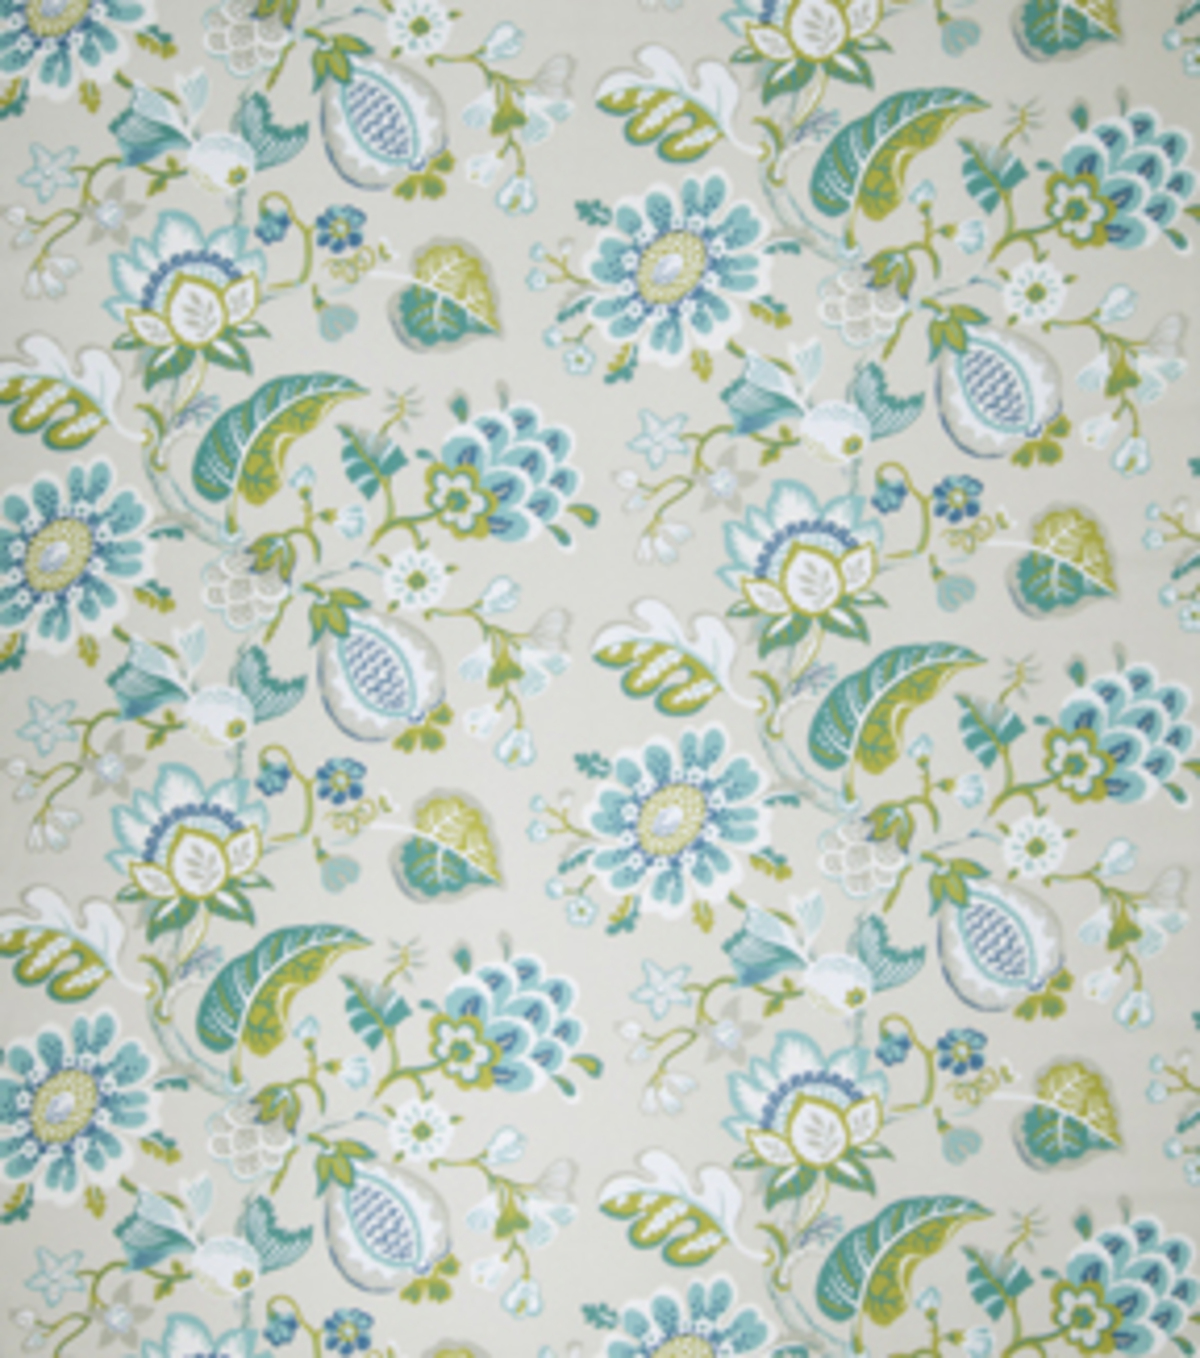 Home Decor 8\u0022x8\u0022 Fabric Swatch-Eaton Square Tweet Seaglass Floral